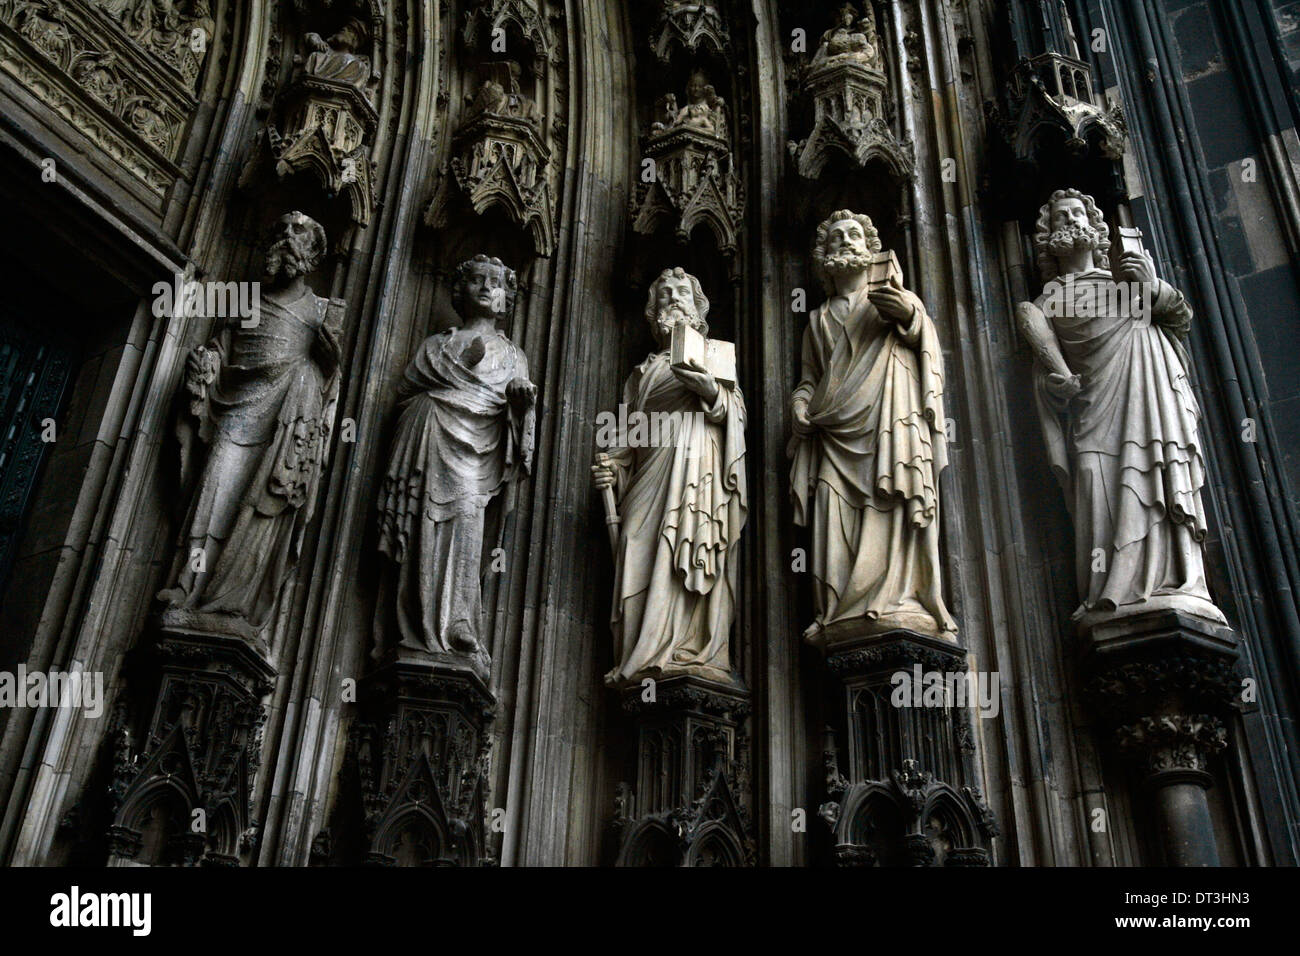 Cologne Cathedral in Germany. - Stock Image